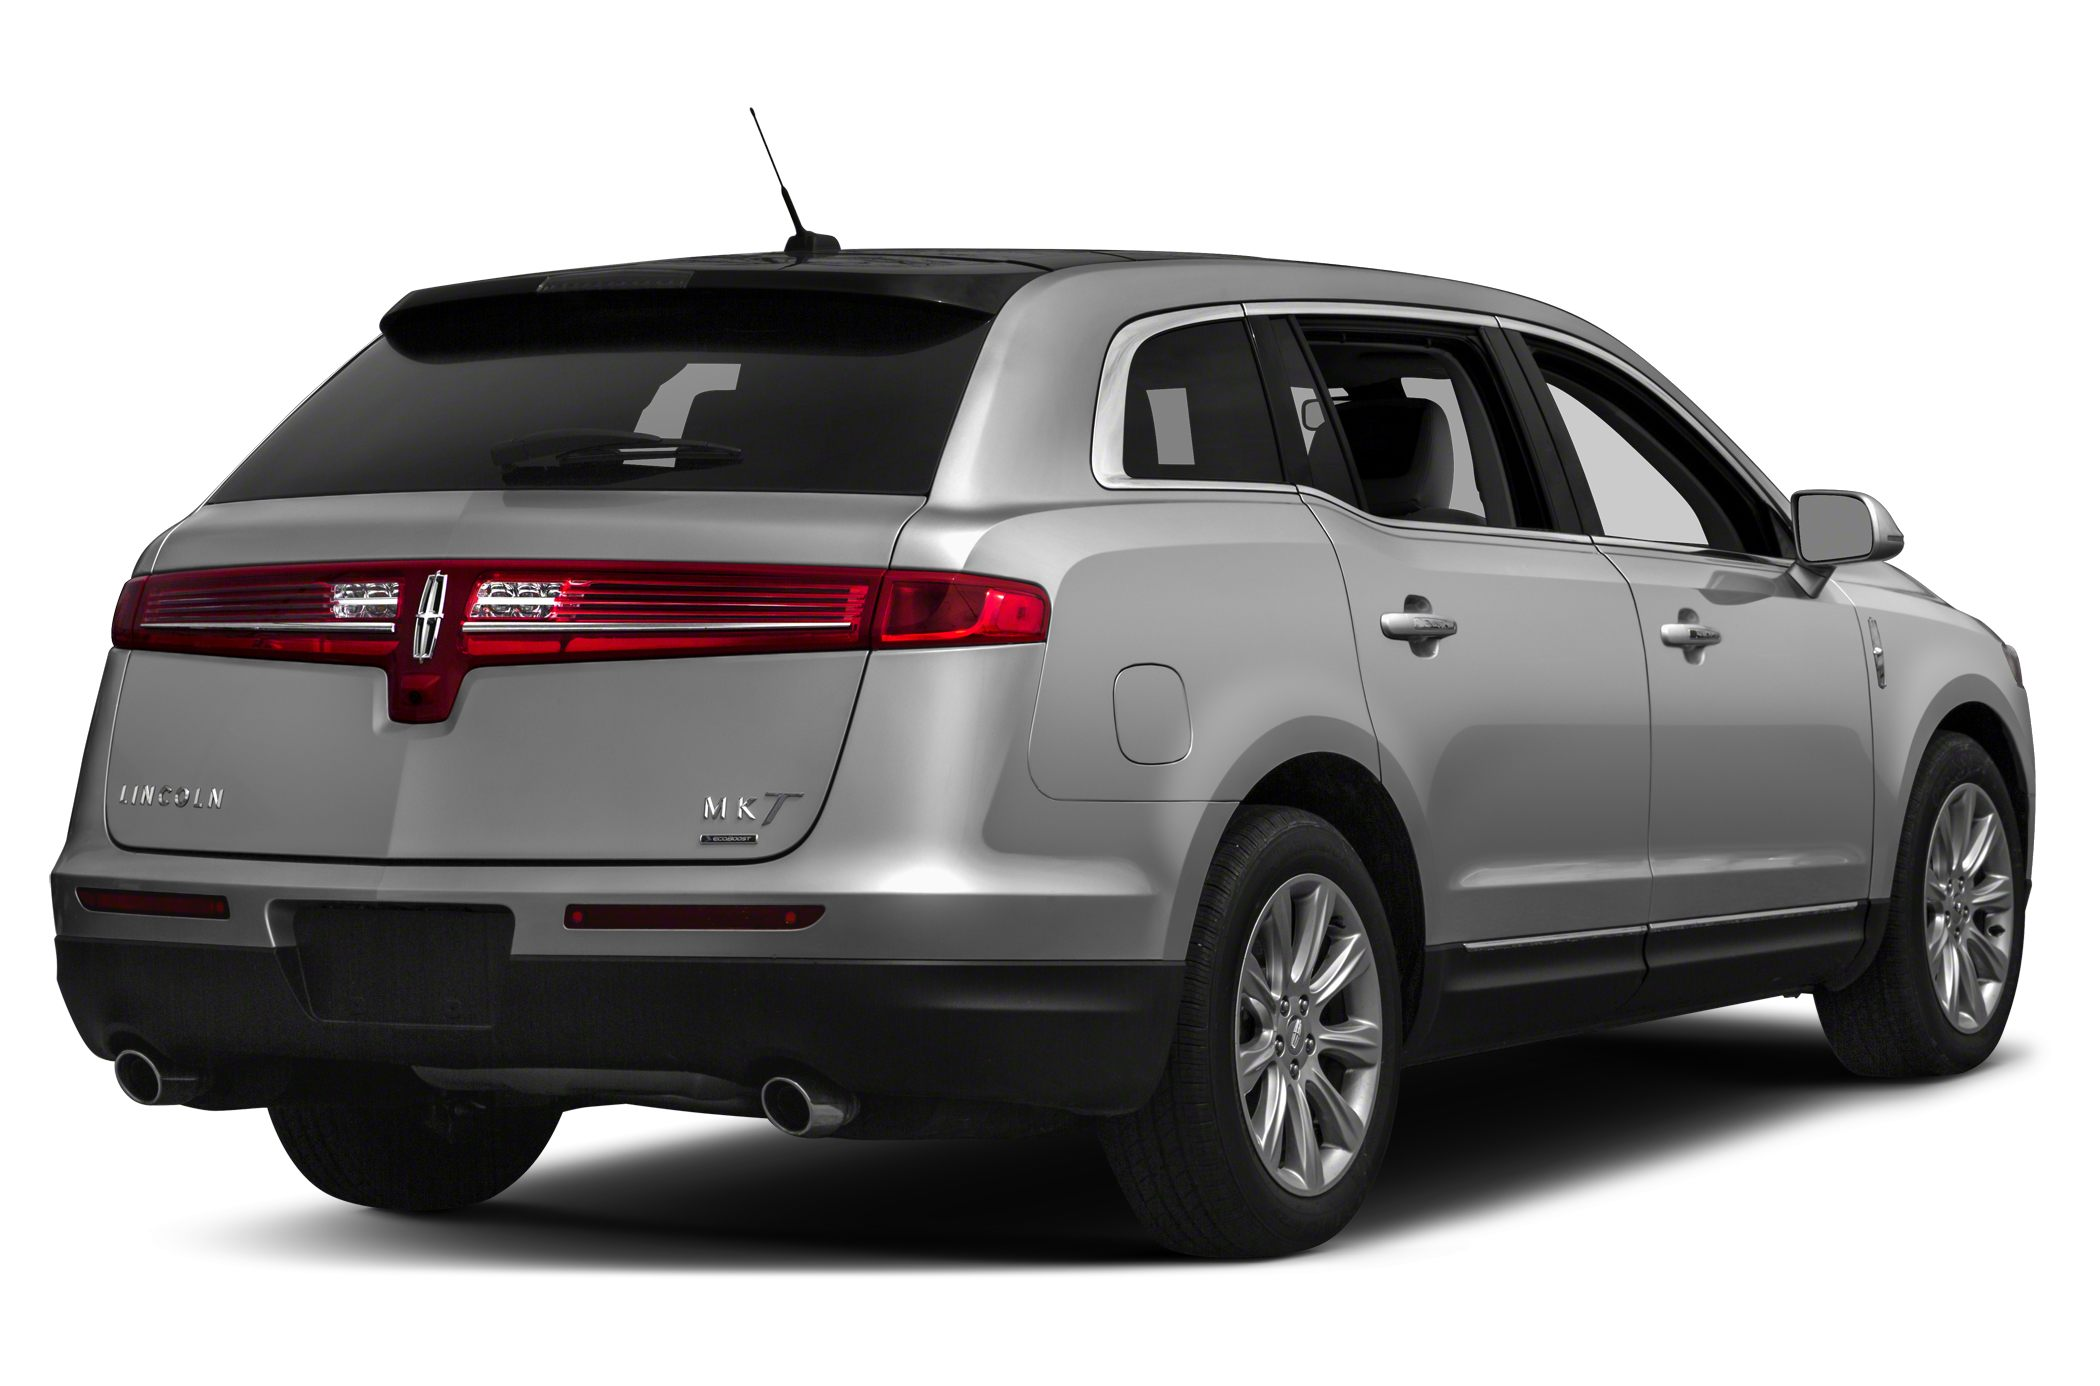 2016 Lincoln Mkt >> 2017 Lincoln MKT Reviews, Specs and Prices   Cars.com